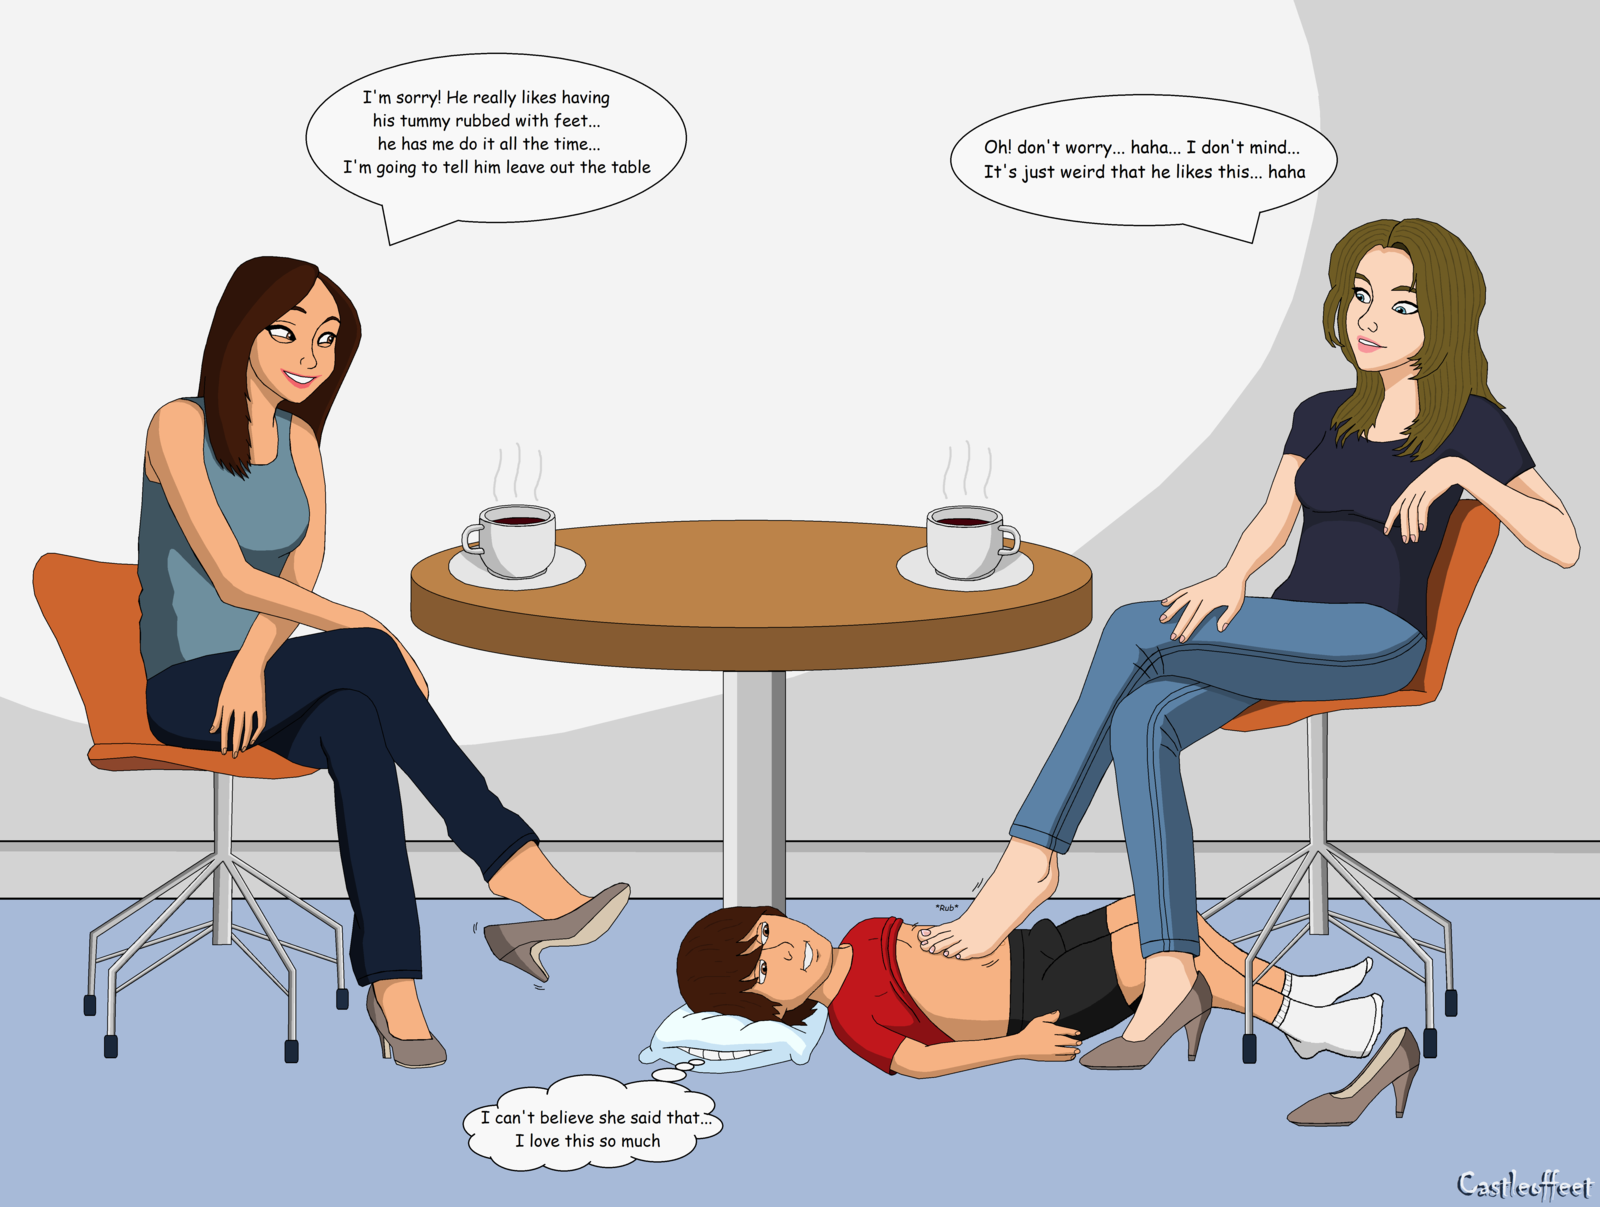 mom_s_friend__foot_on_belly_by_castleoffeet-d9fehuw.png